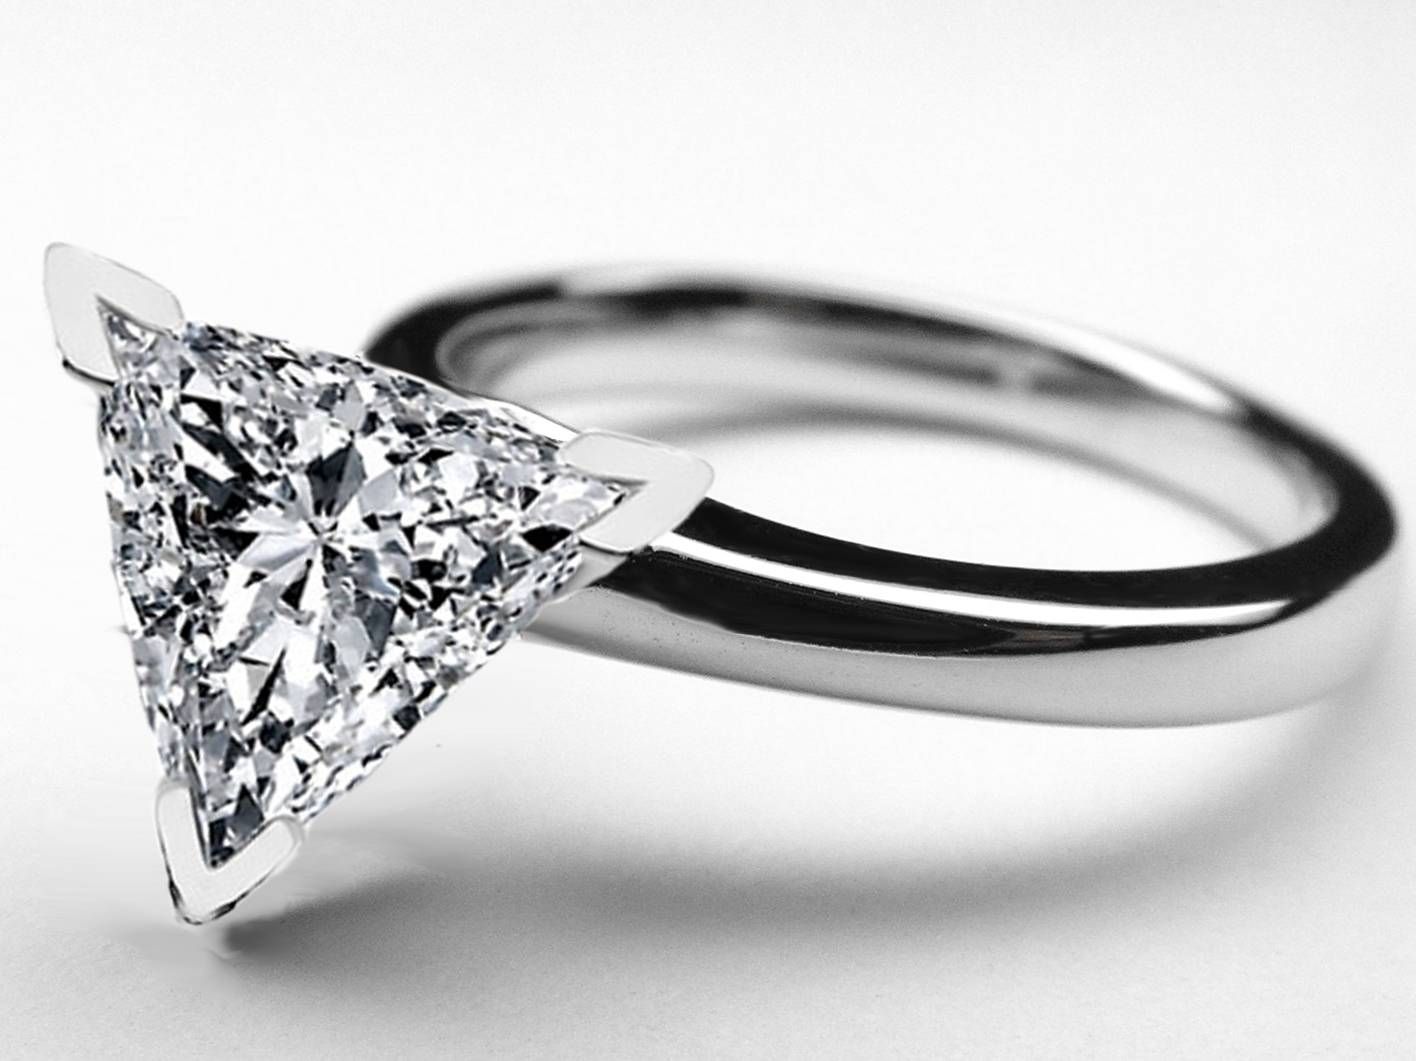 Wedding Rings : Trillion Cut Diamond Wedding Sets Trillion Cut Throughout Triangle Cut Diamond Engagement Rings (View 13 of 15)